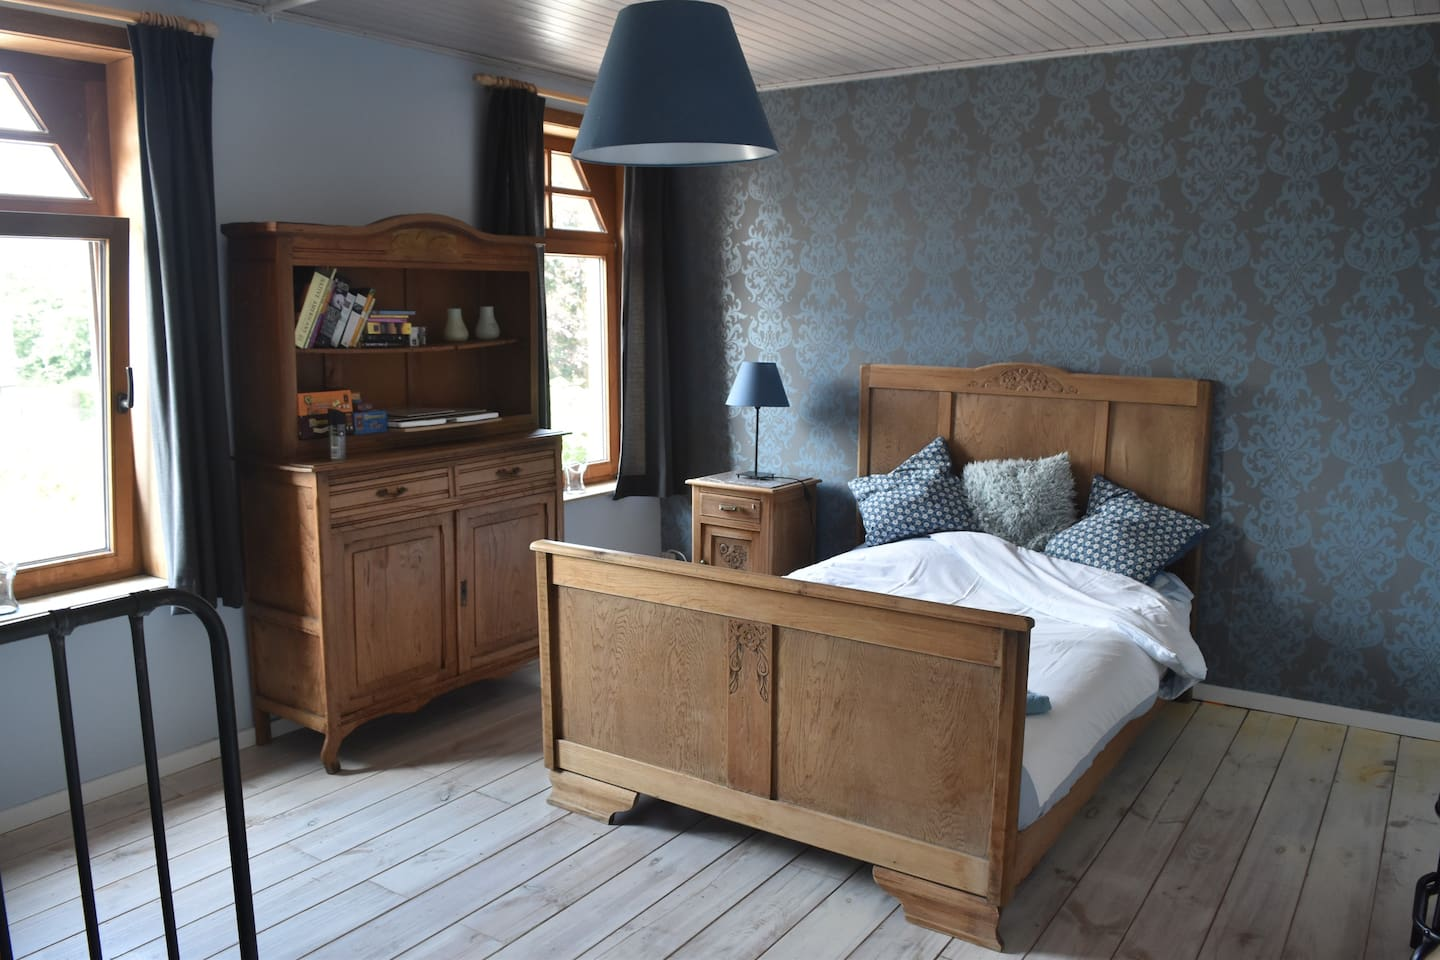 Nice cosy room with a rather small but very comfortable double bed